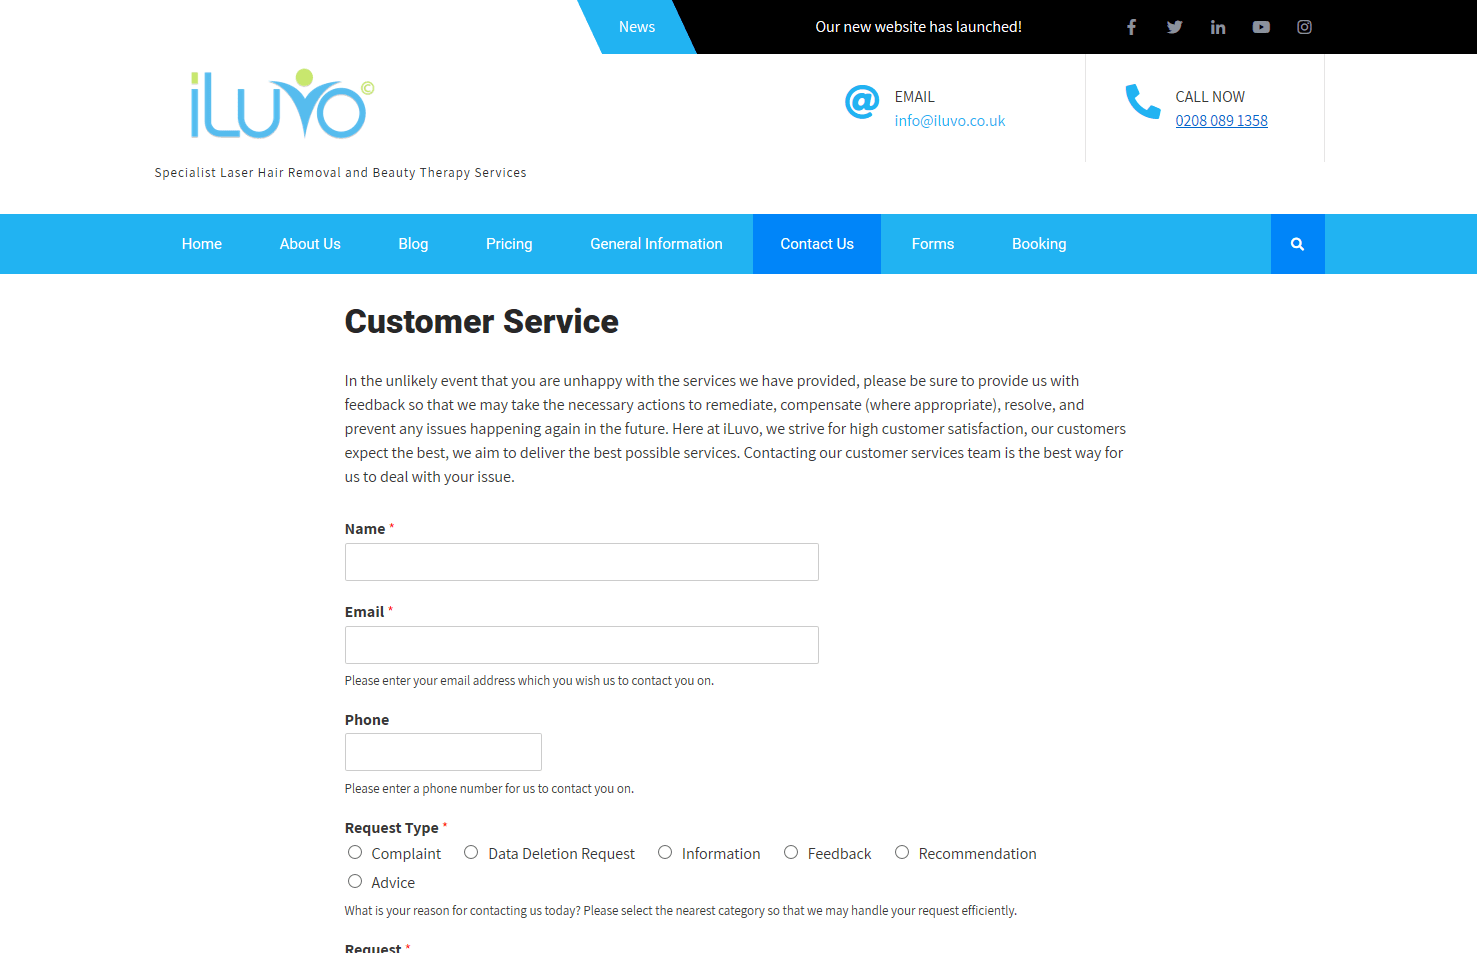 A screenshot of one of our new electronic forms developed for the new iLuvo website.